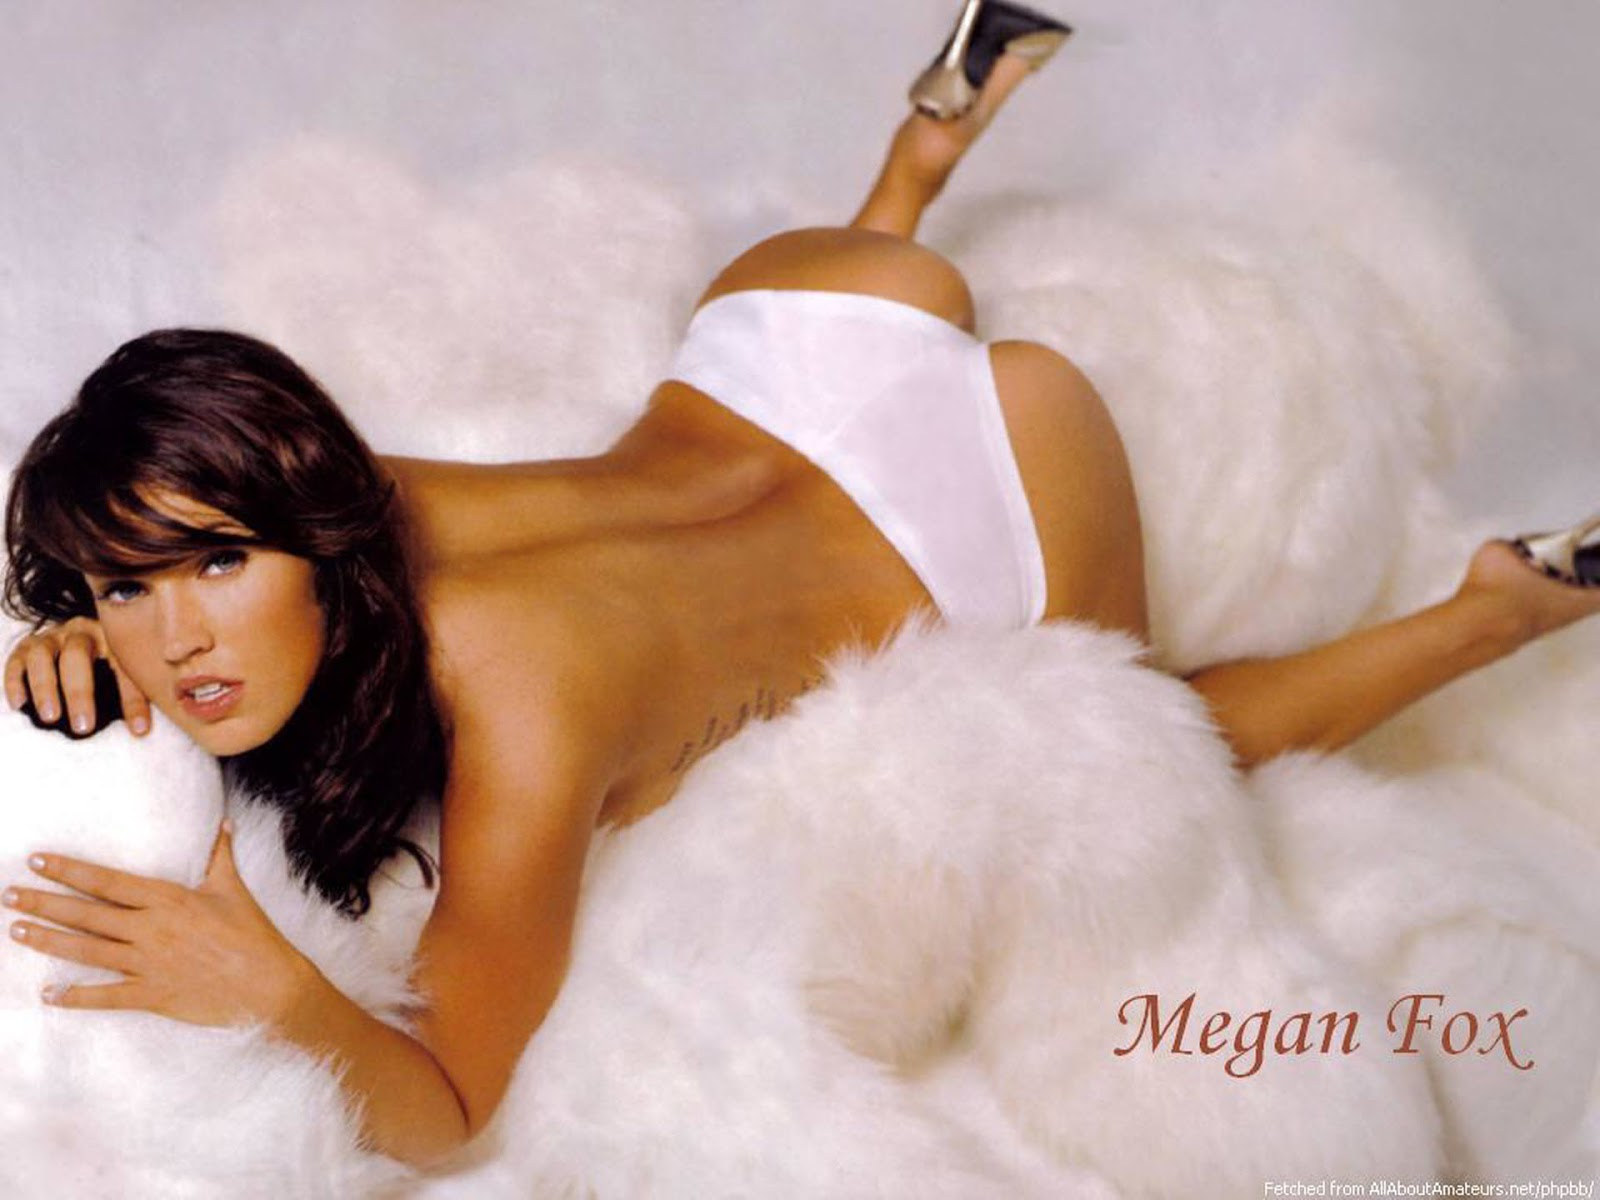 http://4.bp.blogspot.com/-IfbBzdyYmG0/UNV_pFjMWgI/AAAAAAAApl0/DvaYEGQ09tY/s1600/Megan+Fox+-+Hot+HD+Wallpapers+0000.jpg